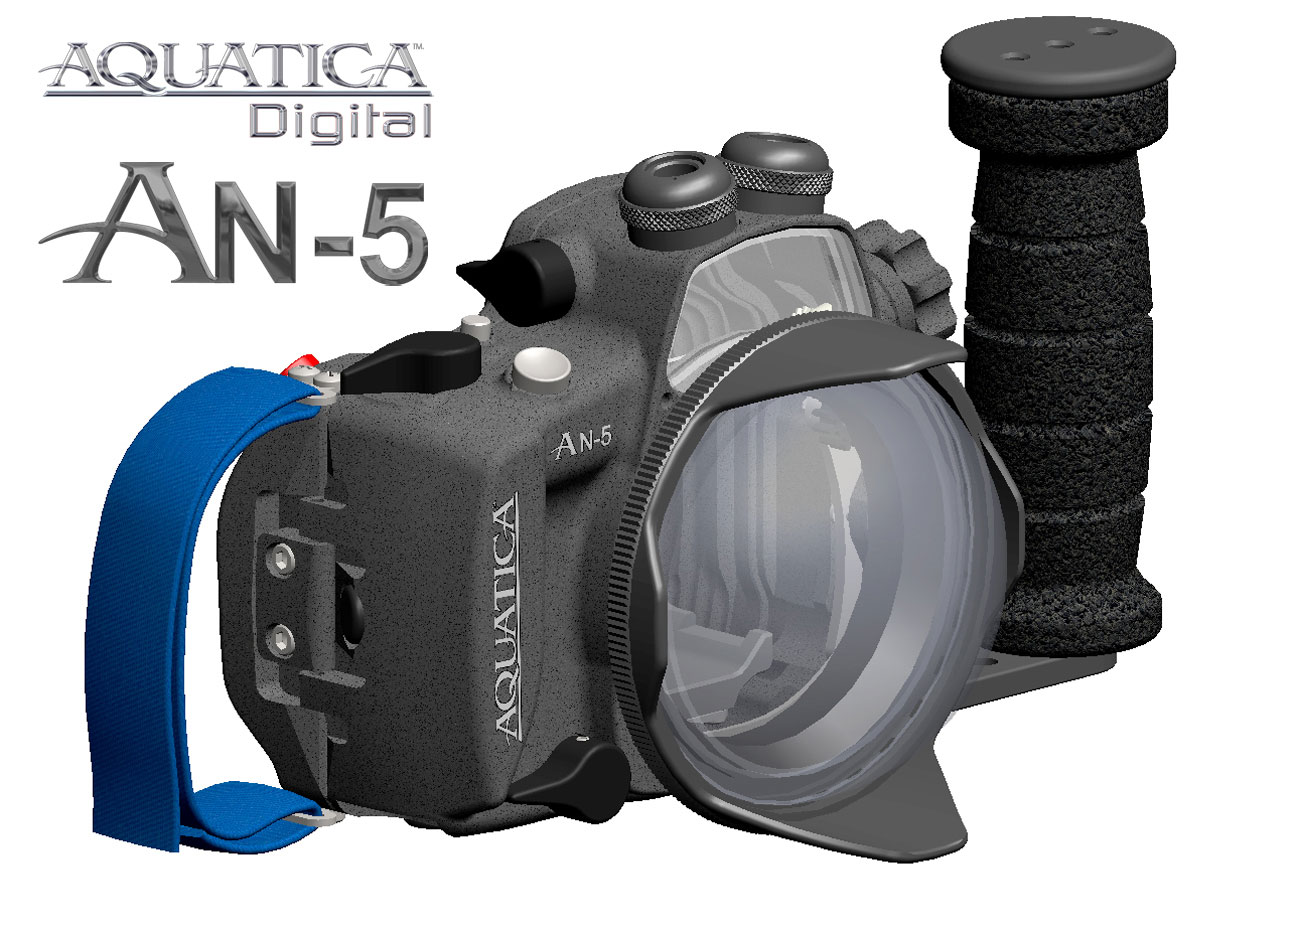 Aquatica underwater housing for the Sony NEX-5 camera